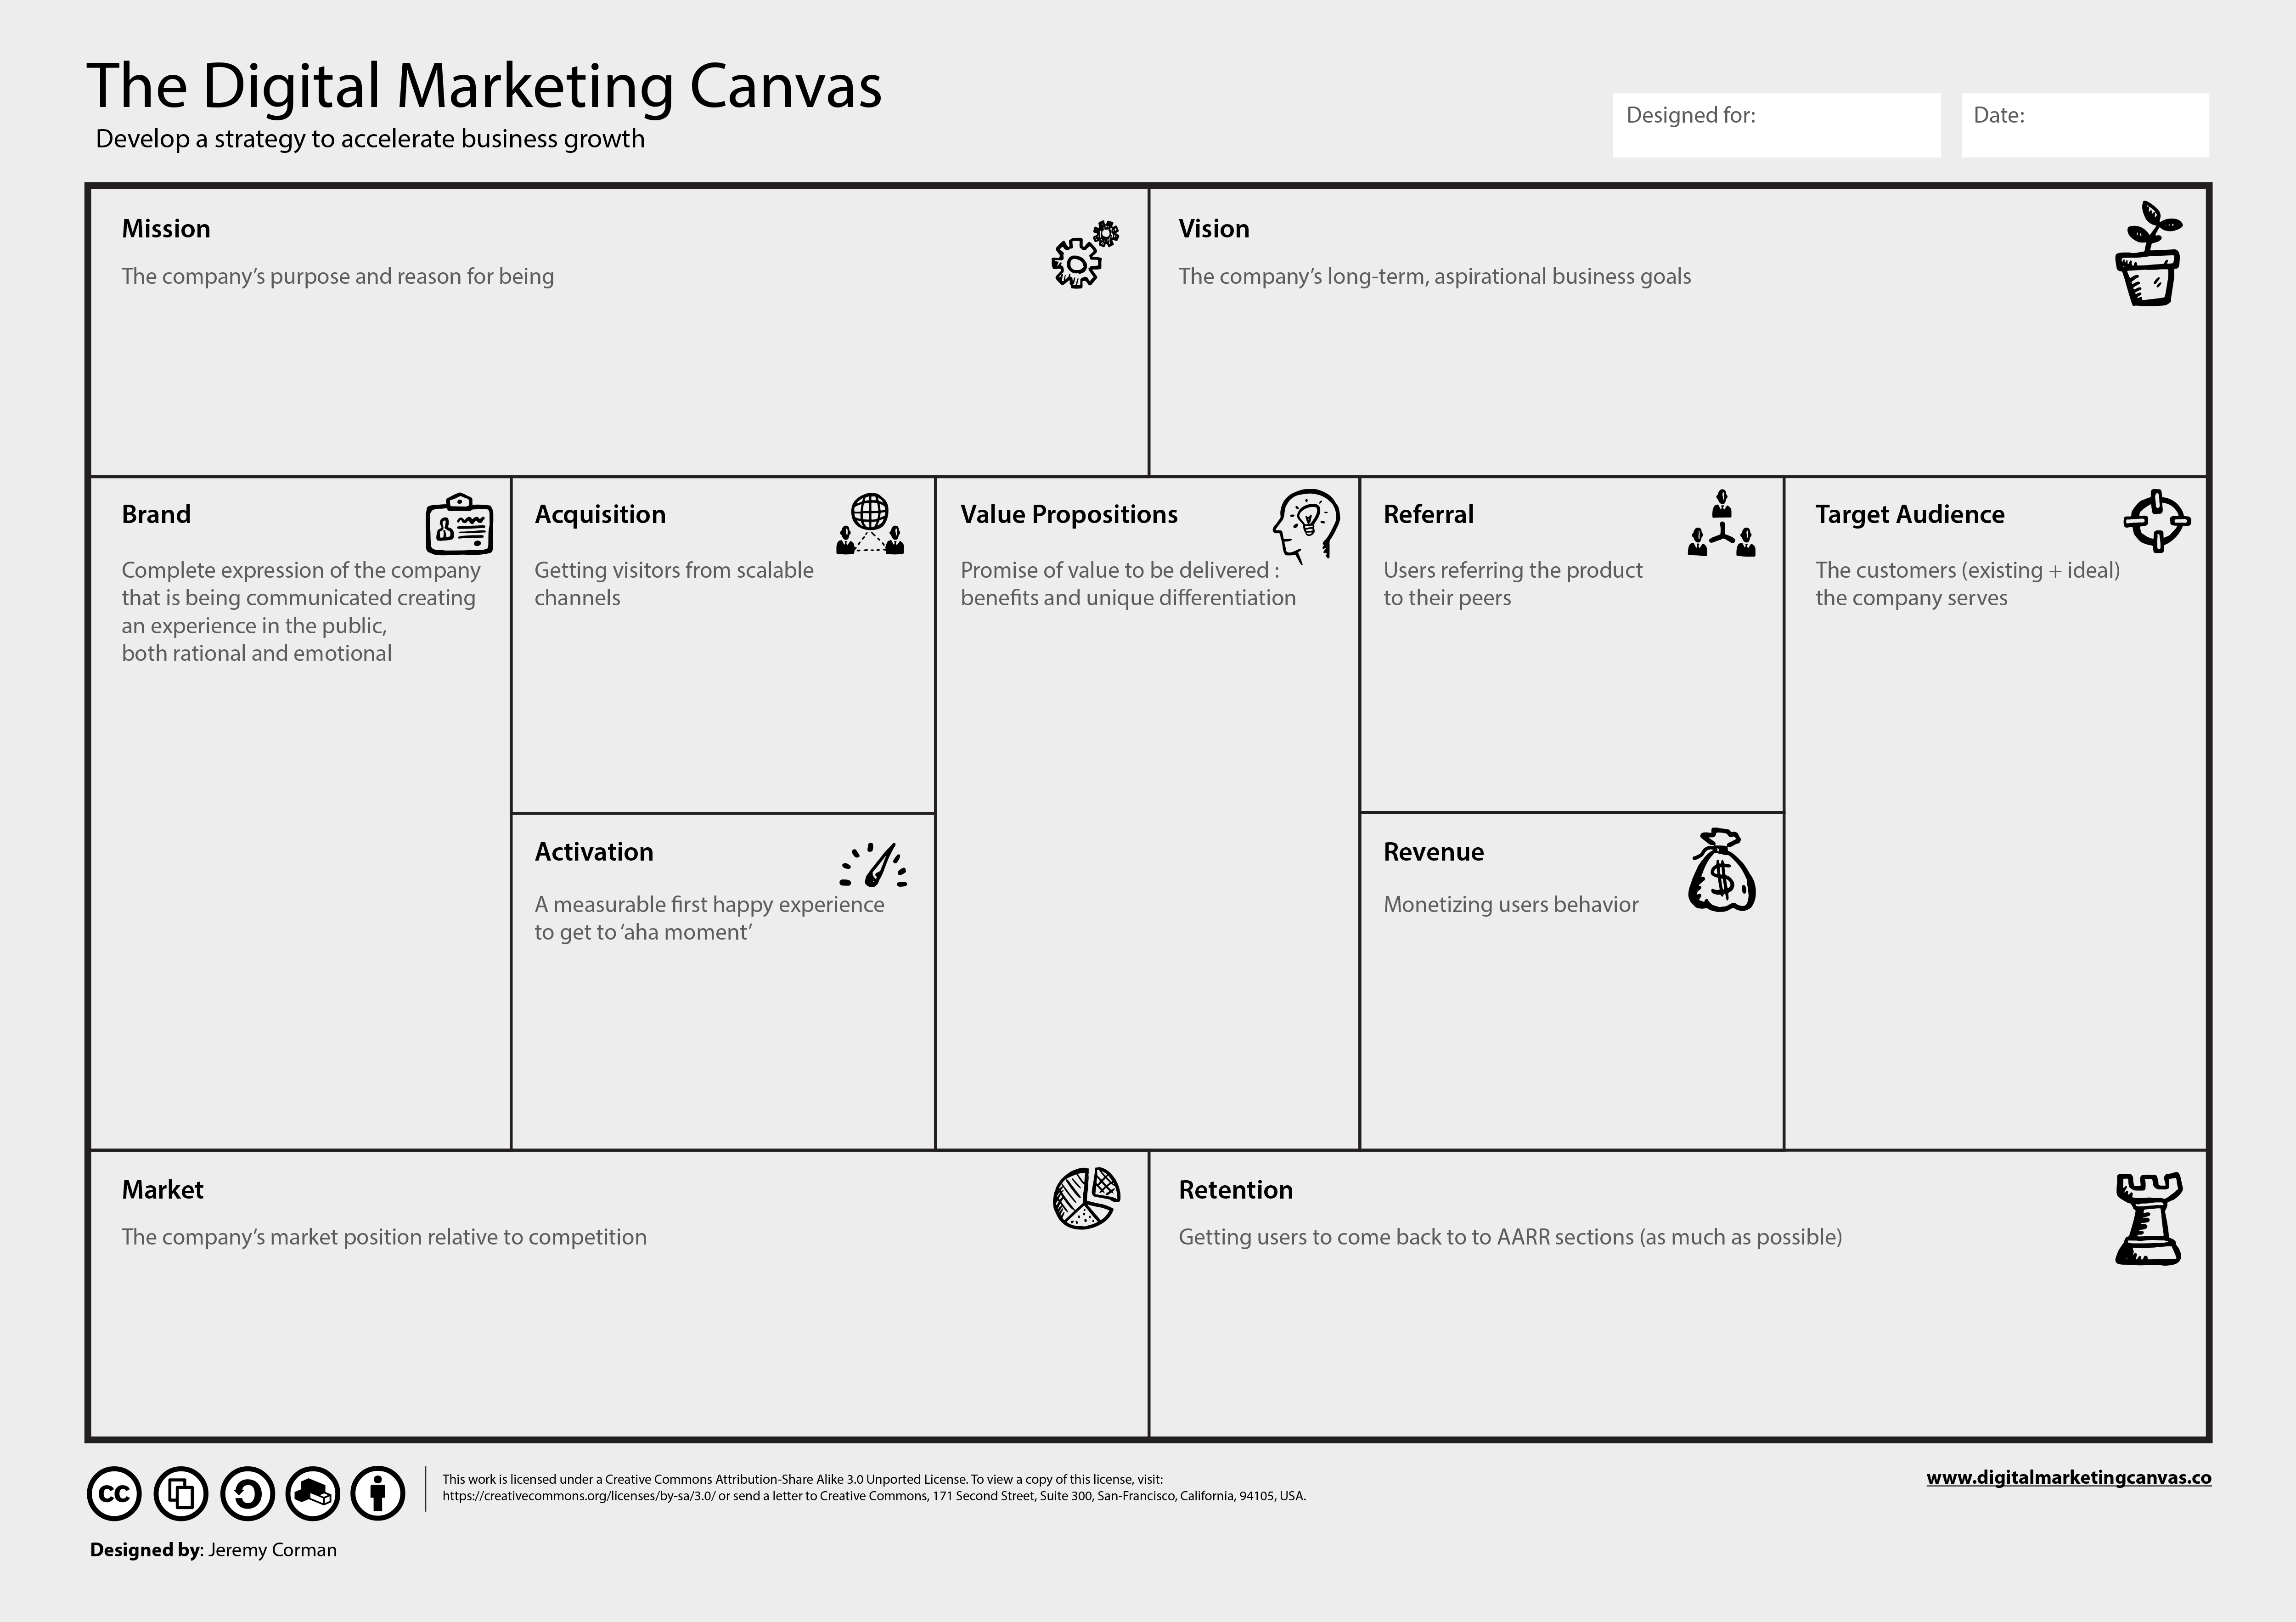 Digital Marketing Canvas Tool And Template Online Tuzzit